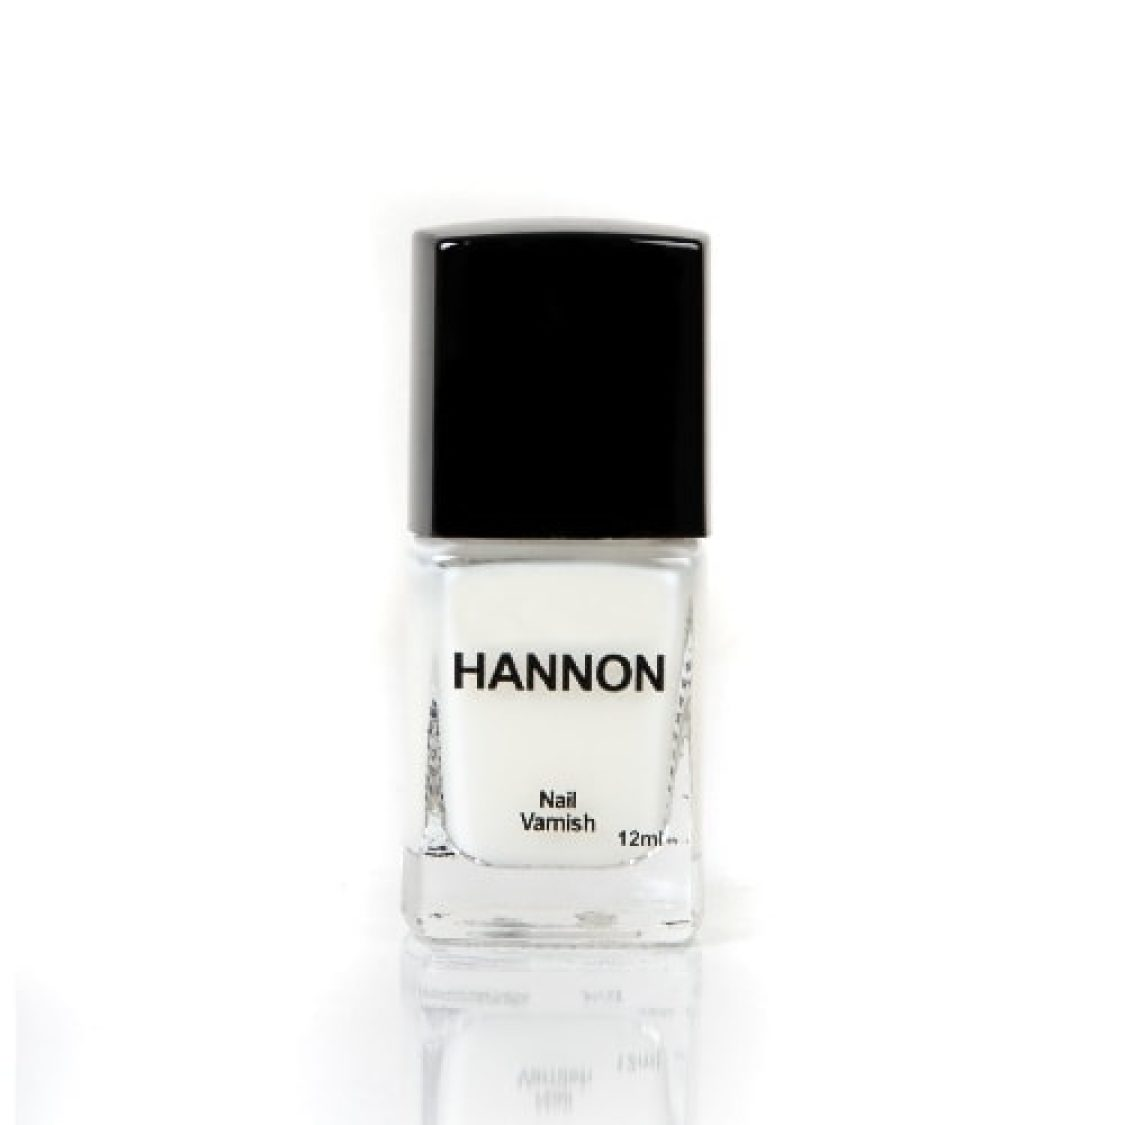 Hannon - Nail Varnish 12ml - Base Coat